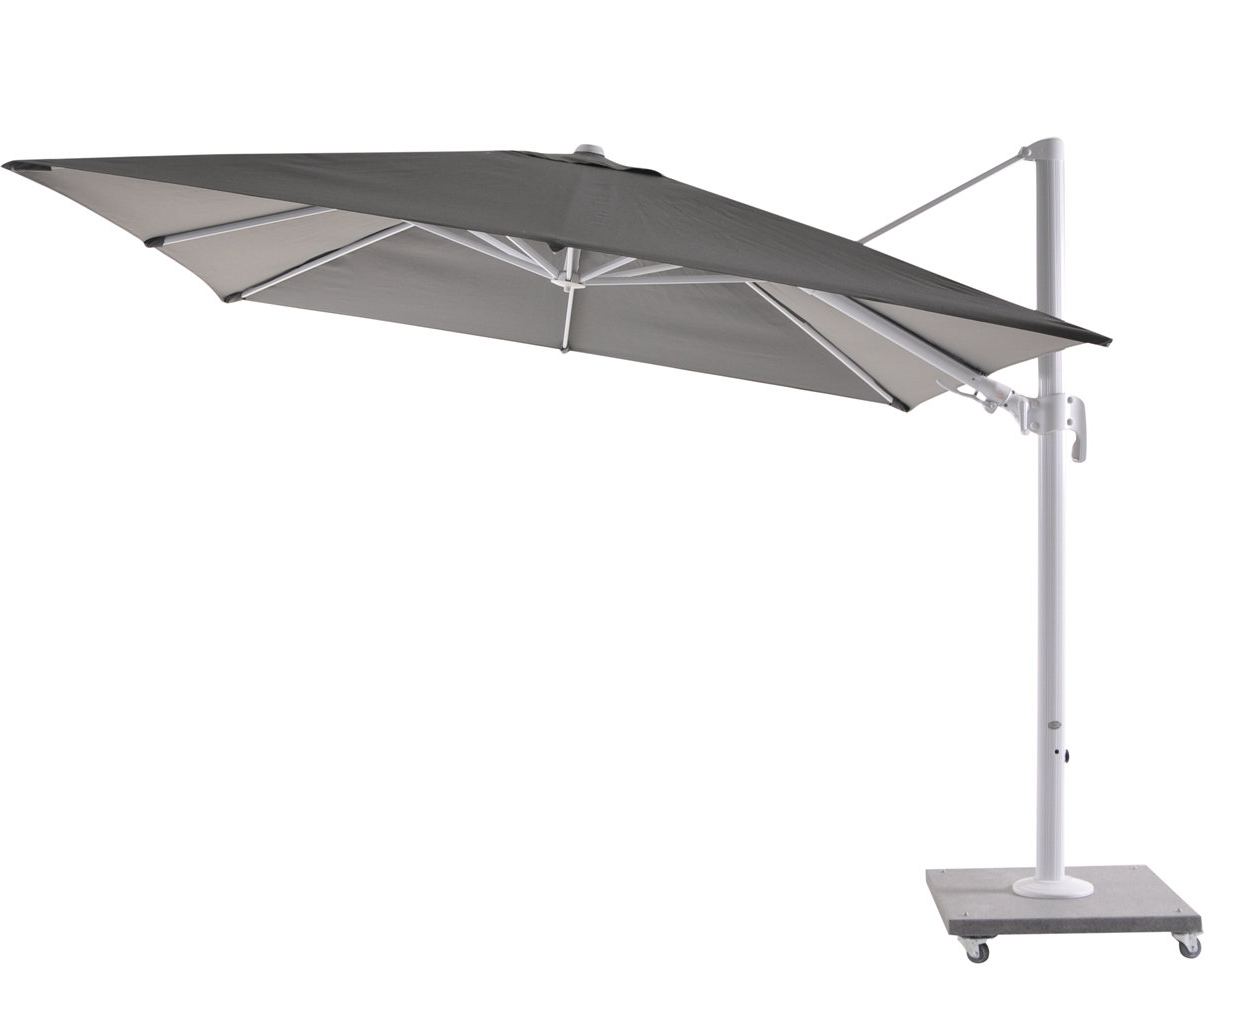 Most Up To Date Bozarth 10' Square Cantilever Umbrella Regarding Windell Square Cantilever Umbrellas (View 12 of 20)